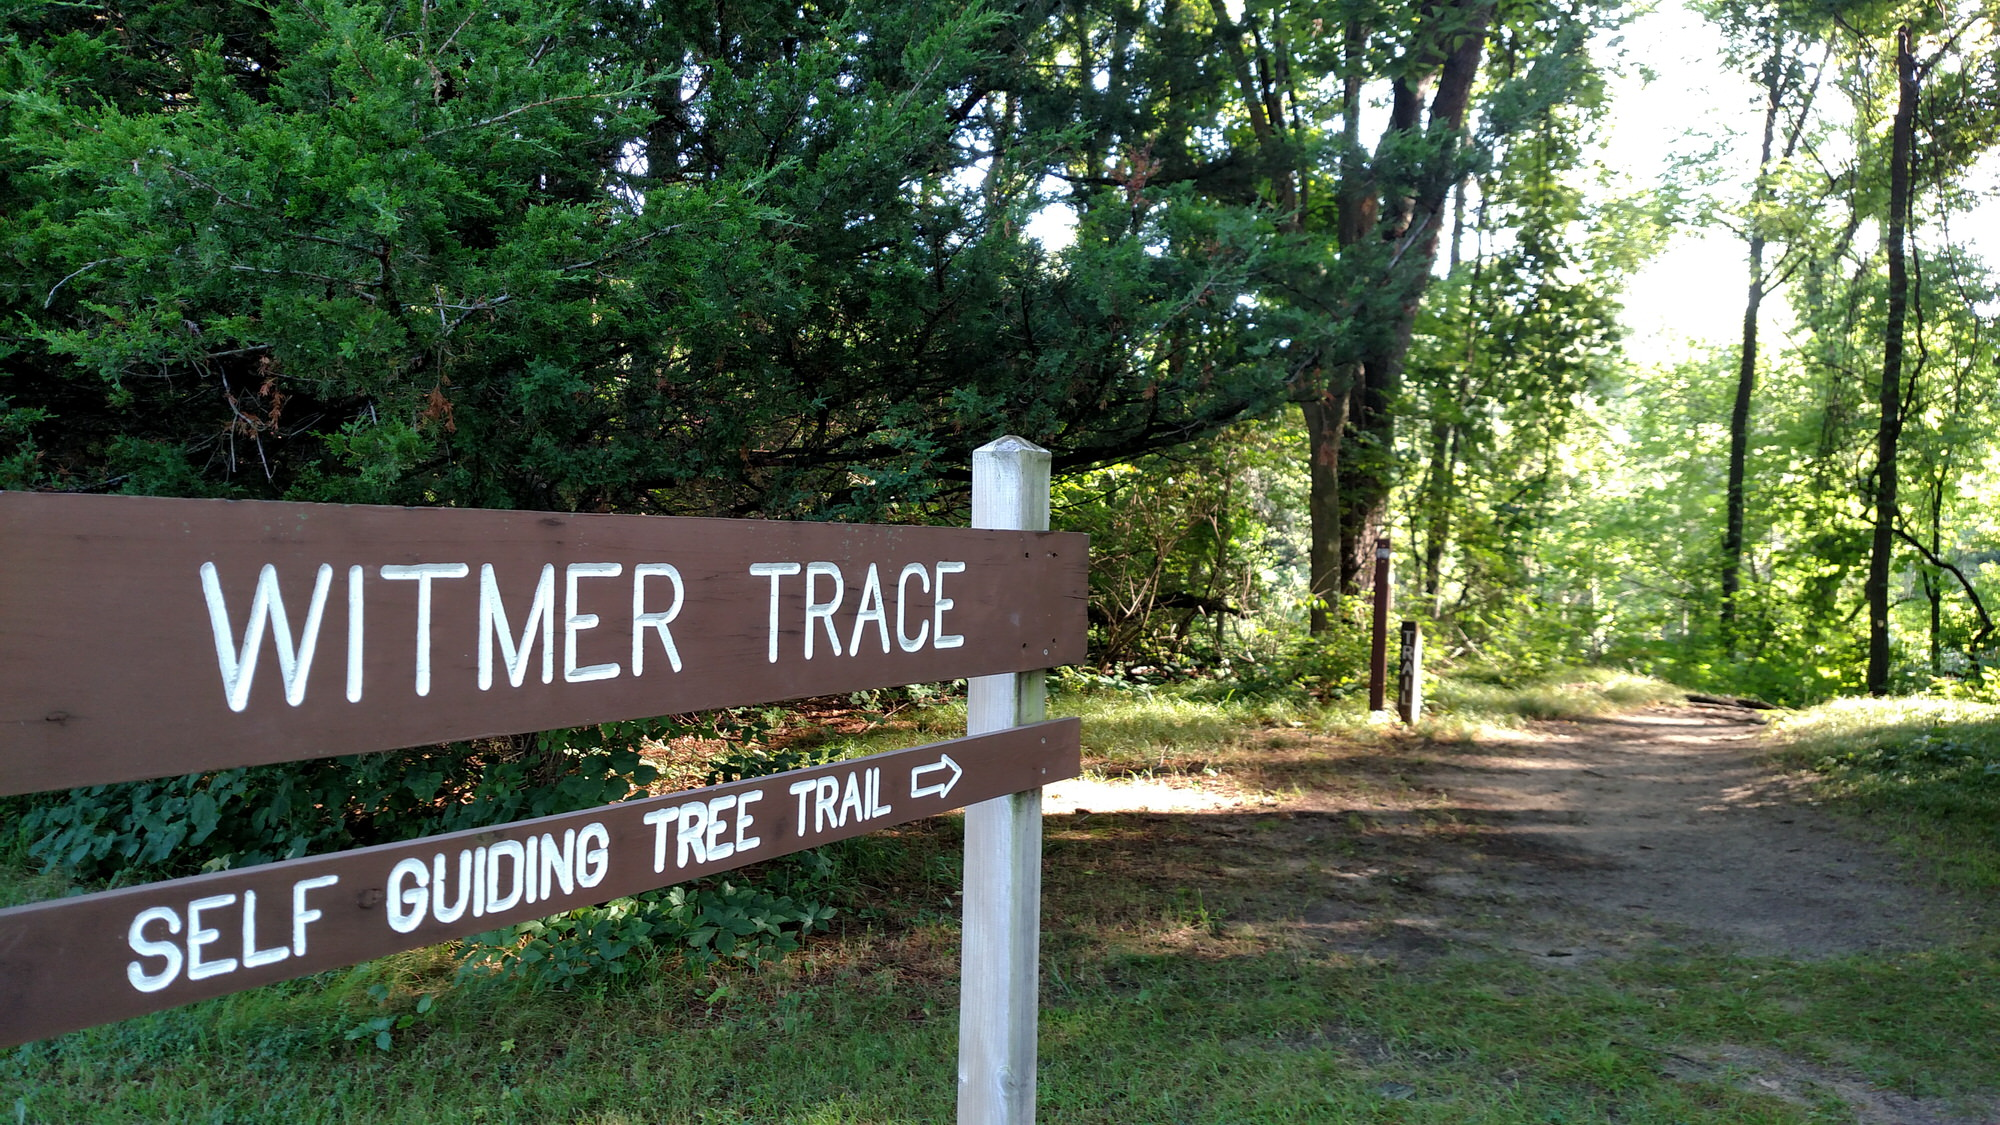 photo: Witmer Trace Self Guiding Tree Trail. Photo by Ronda DeCaire.